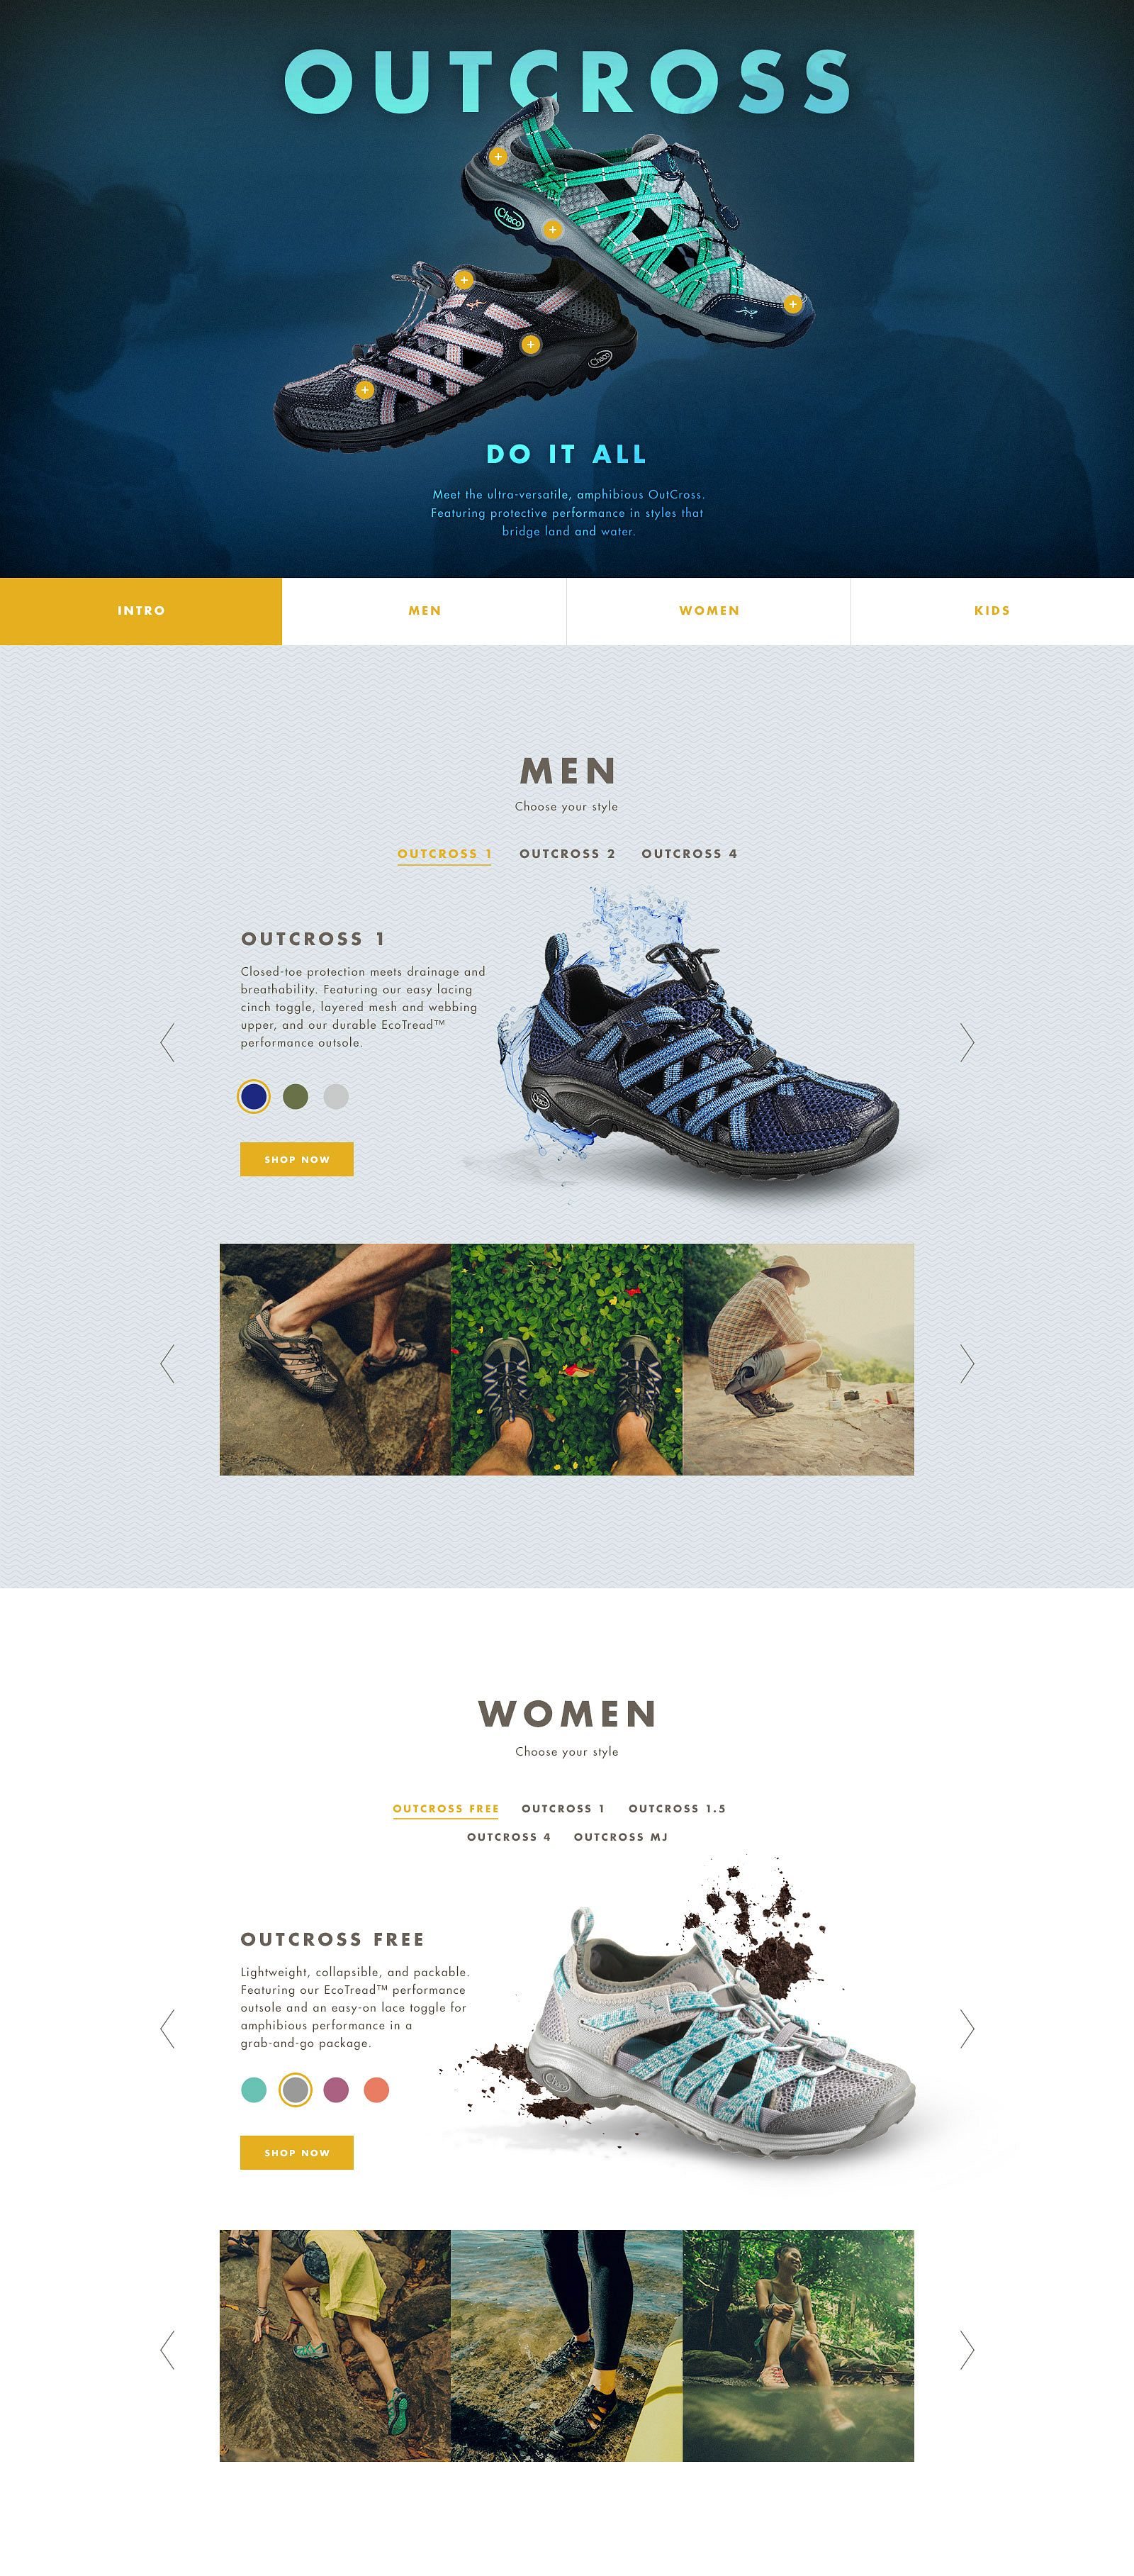 Chacos Outcross Desktop Site